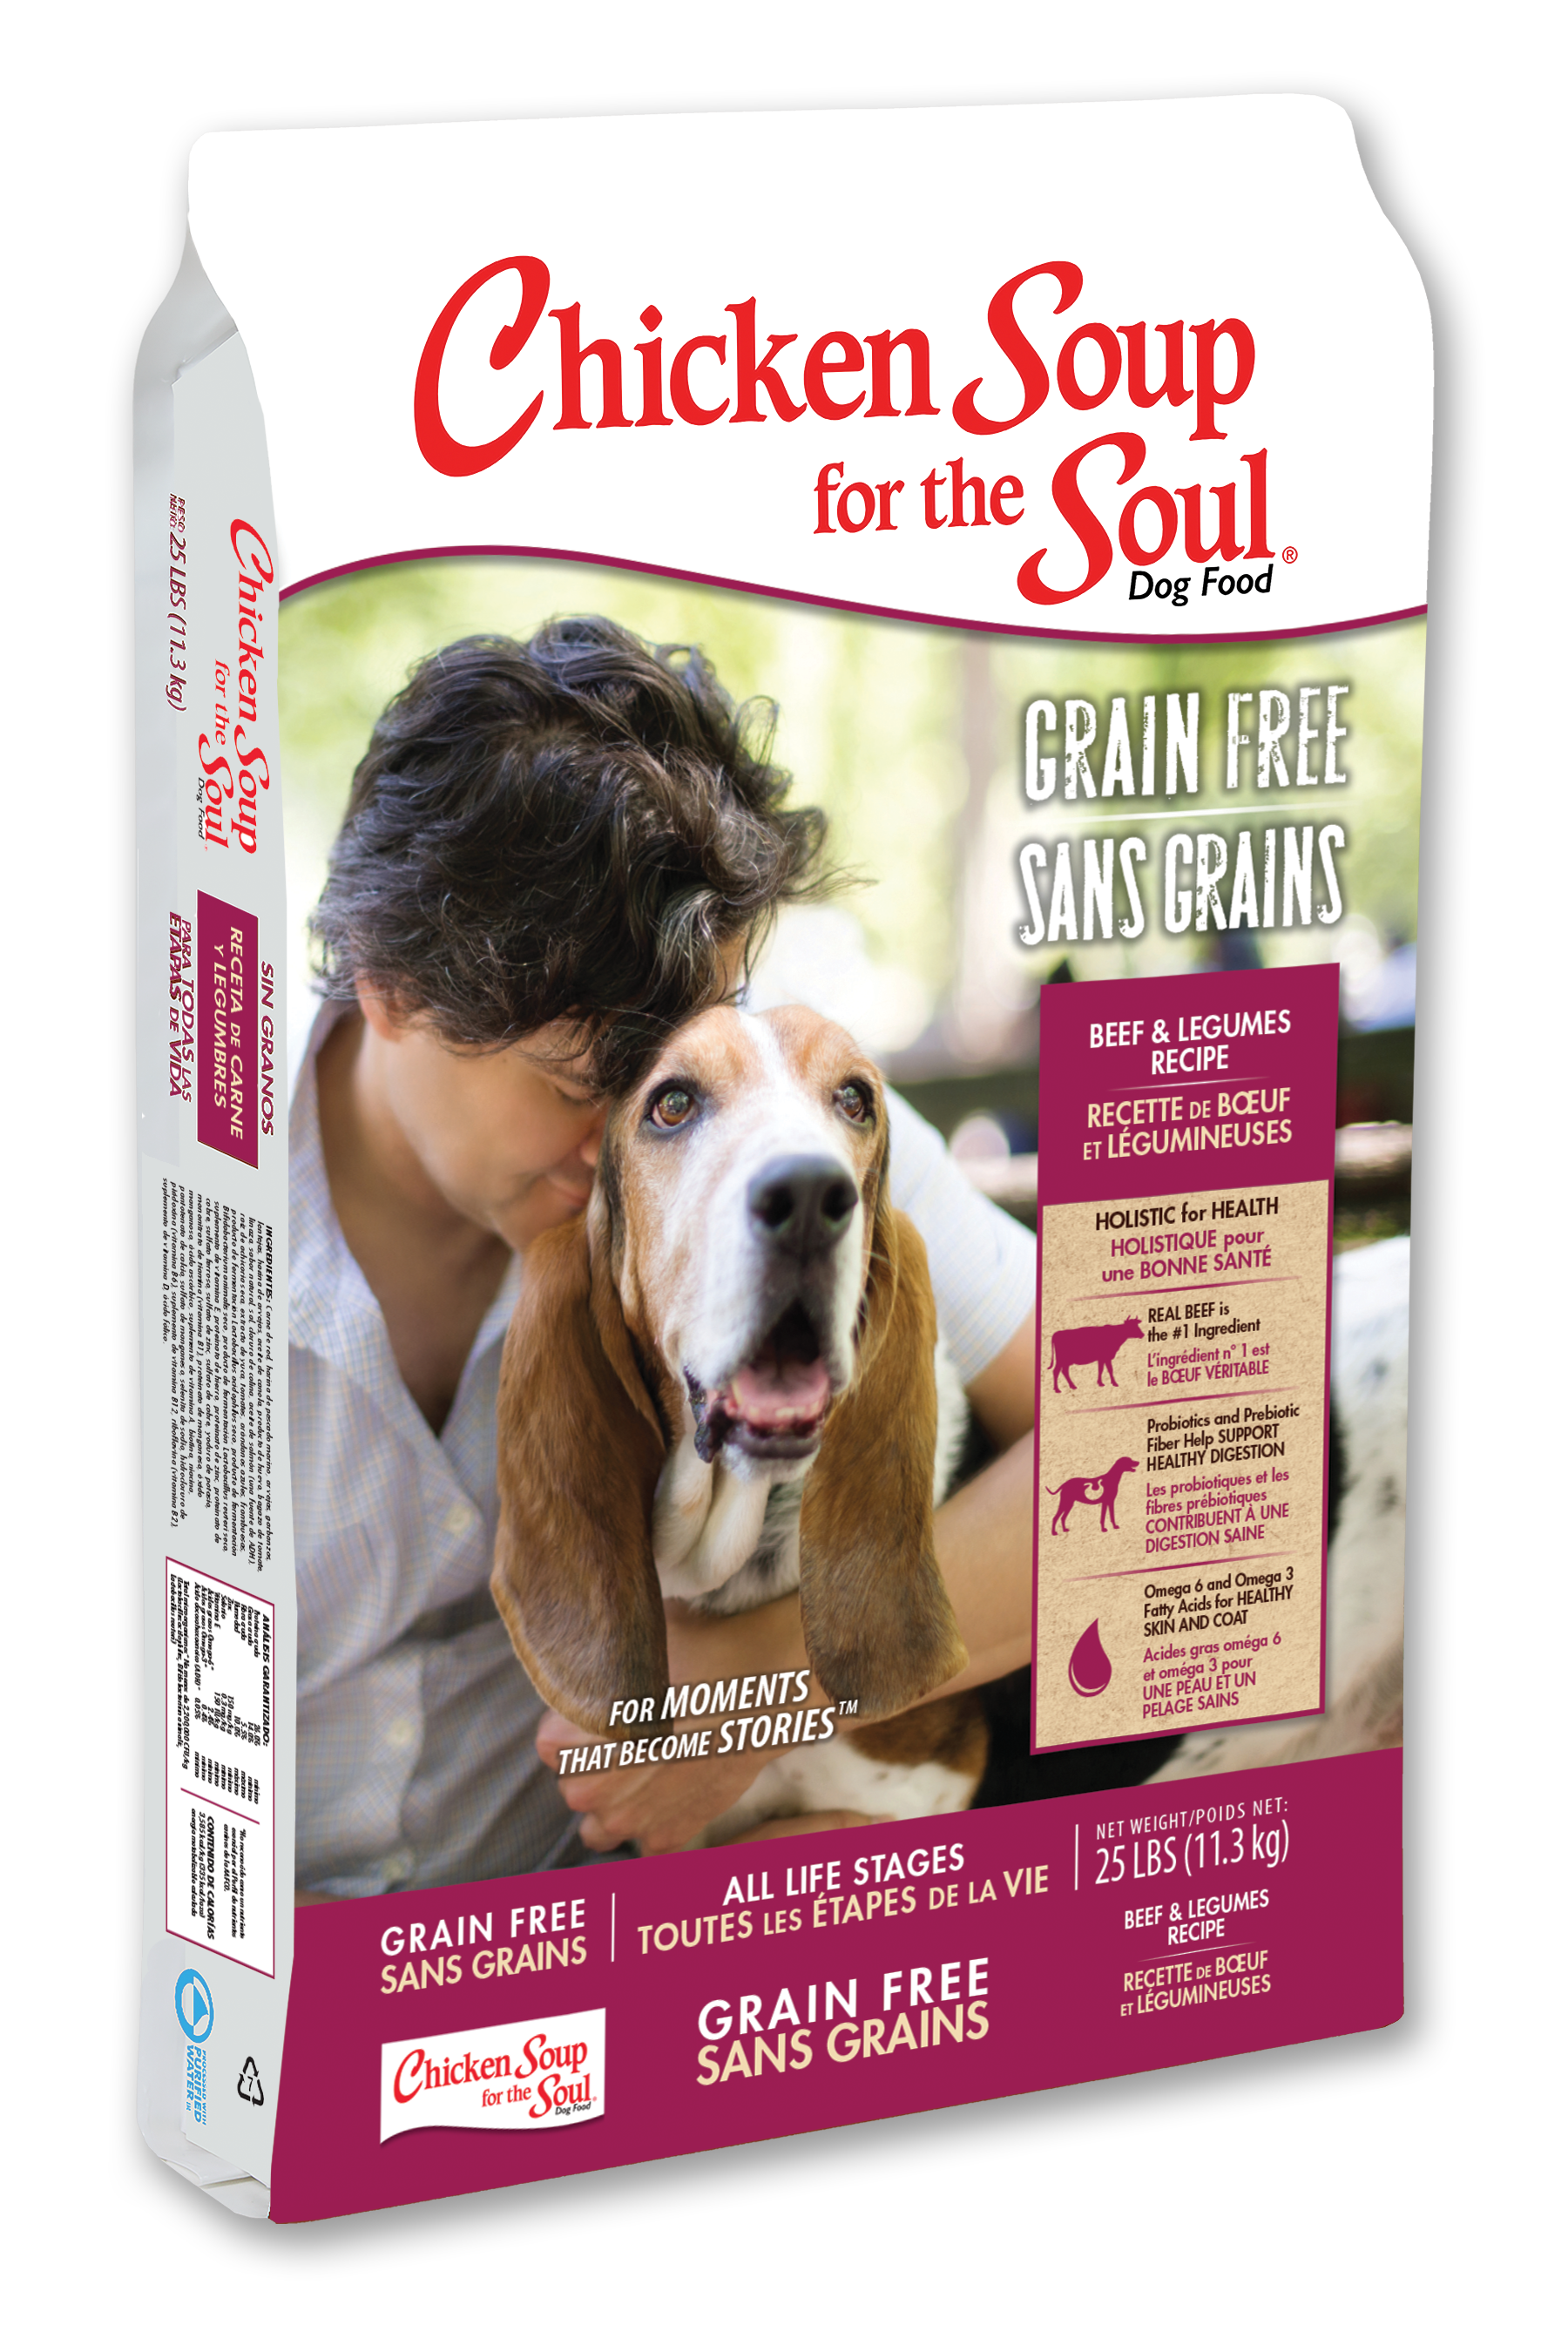 Gastrointestinal Grain Free Wet Cat Food